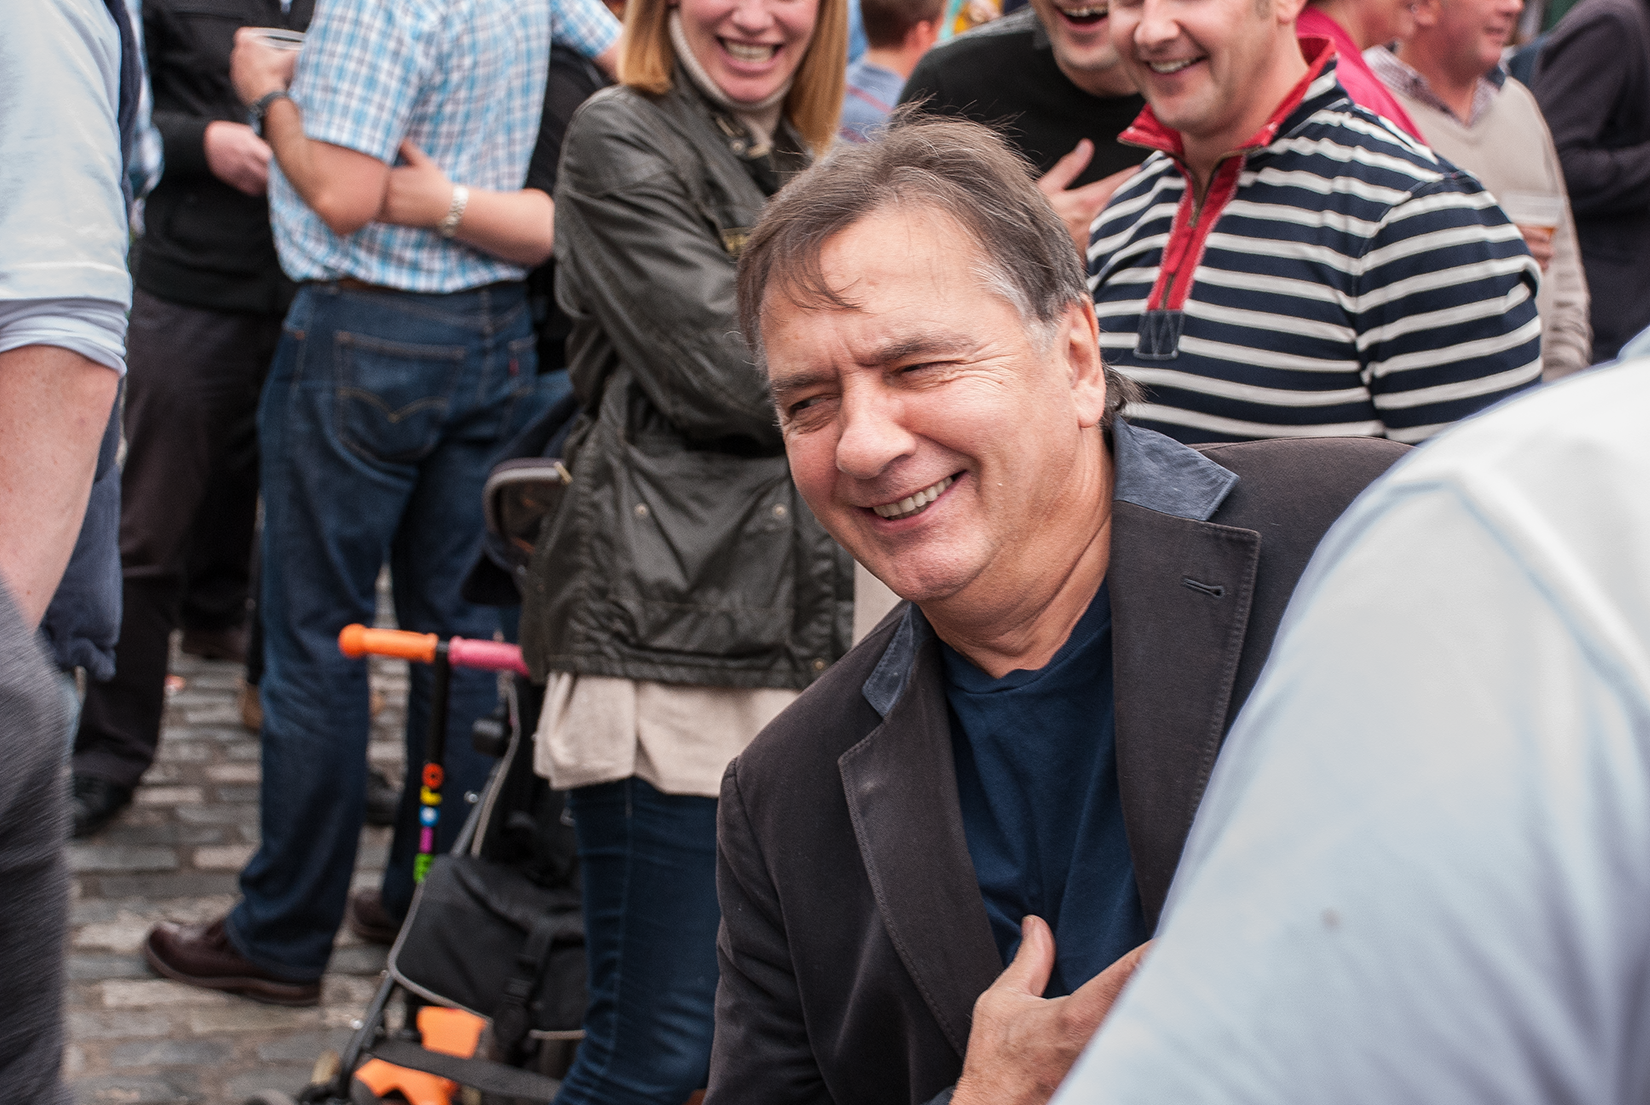 Raymond Blanc joking with the crowd